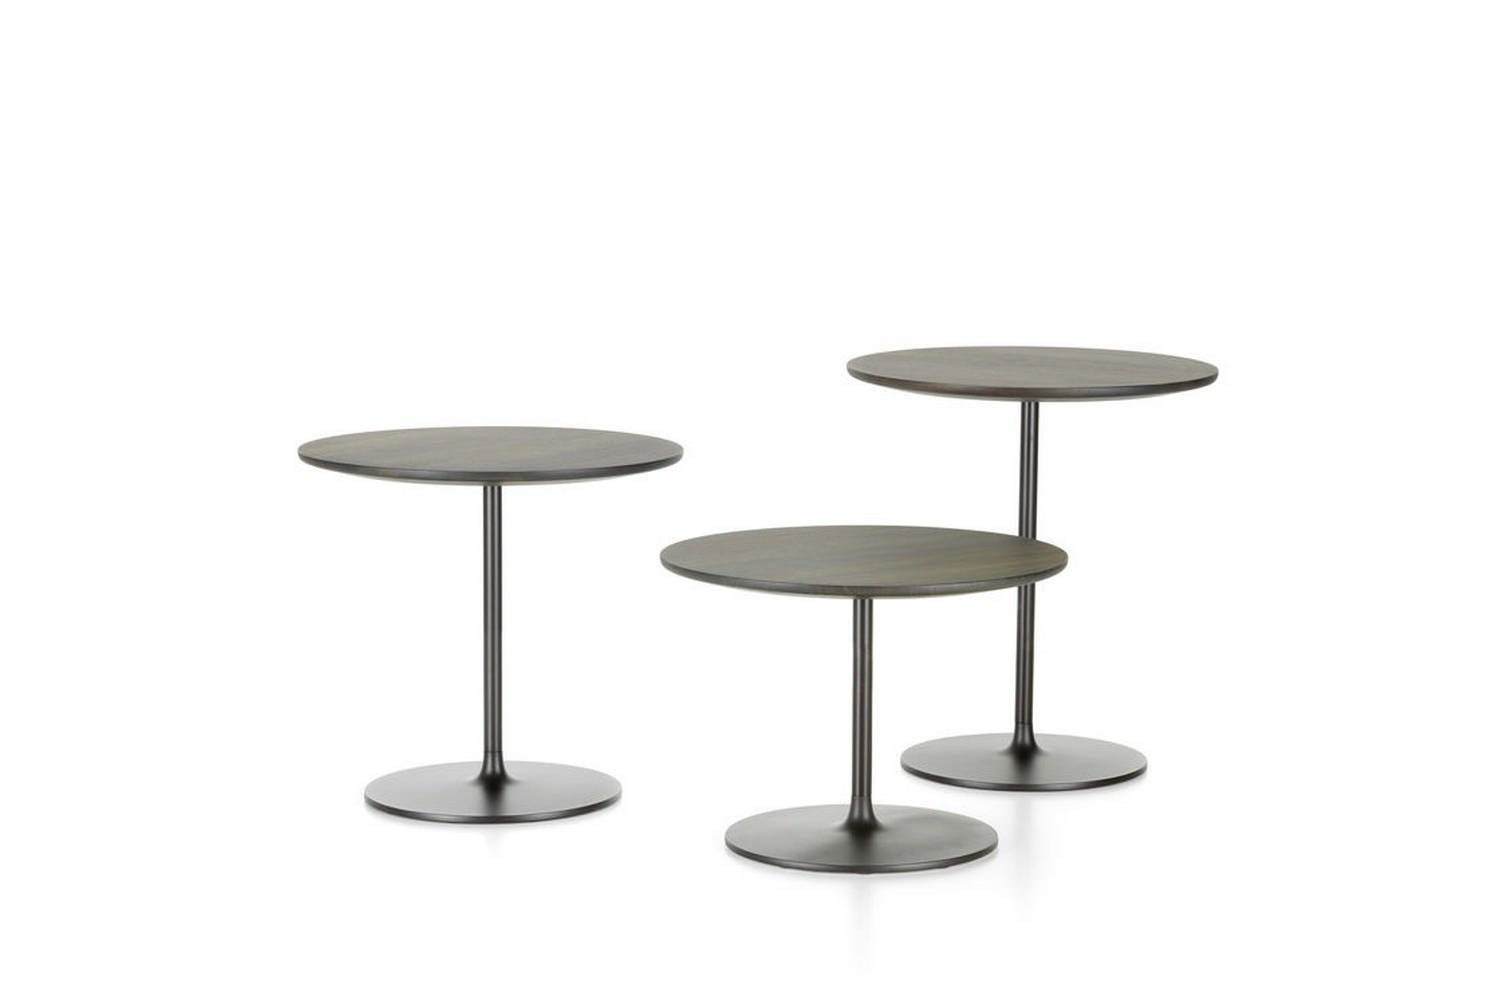 Occasional Low Table by Jasper Morrison for Vitra